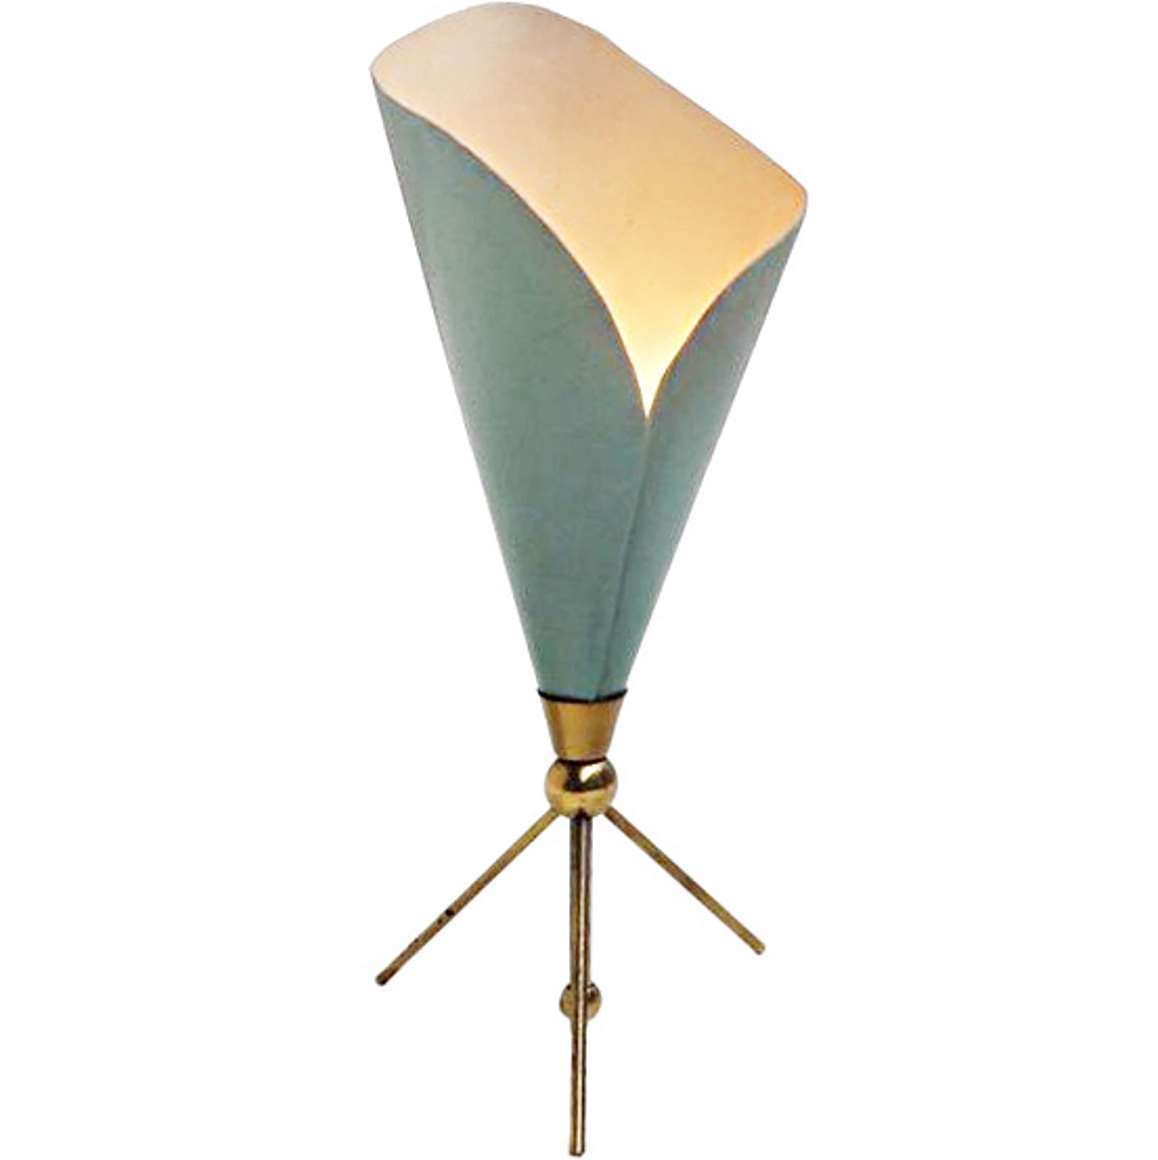 Angelo Lelii Calla Table Lamp conical folded aluminium green painted lampshade brass tripod base 1950s 1960s MCM